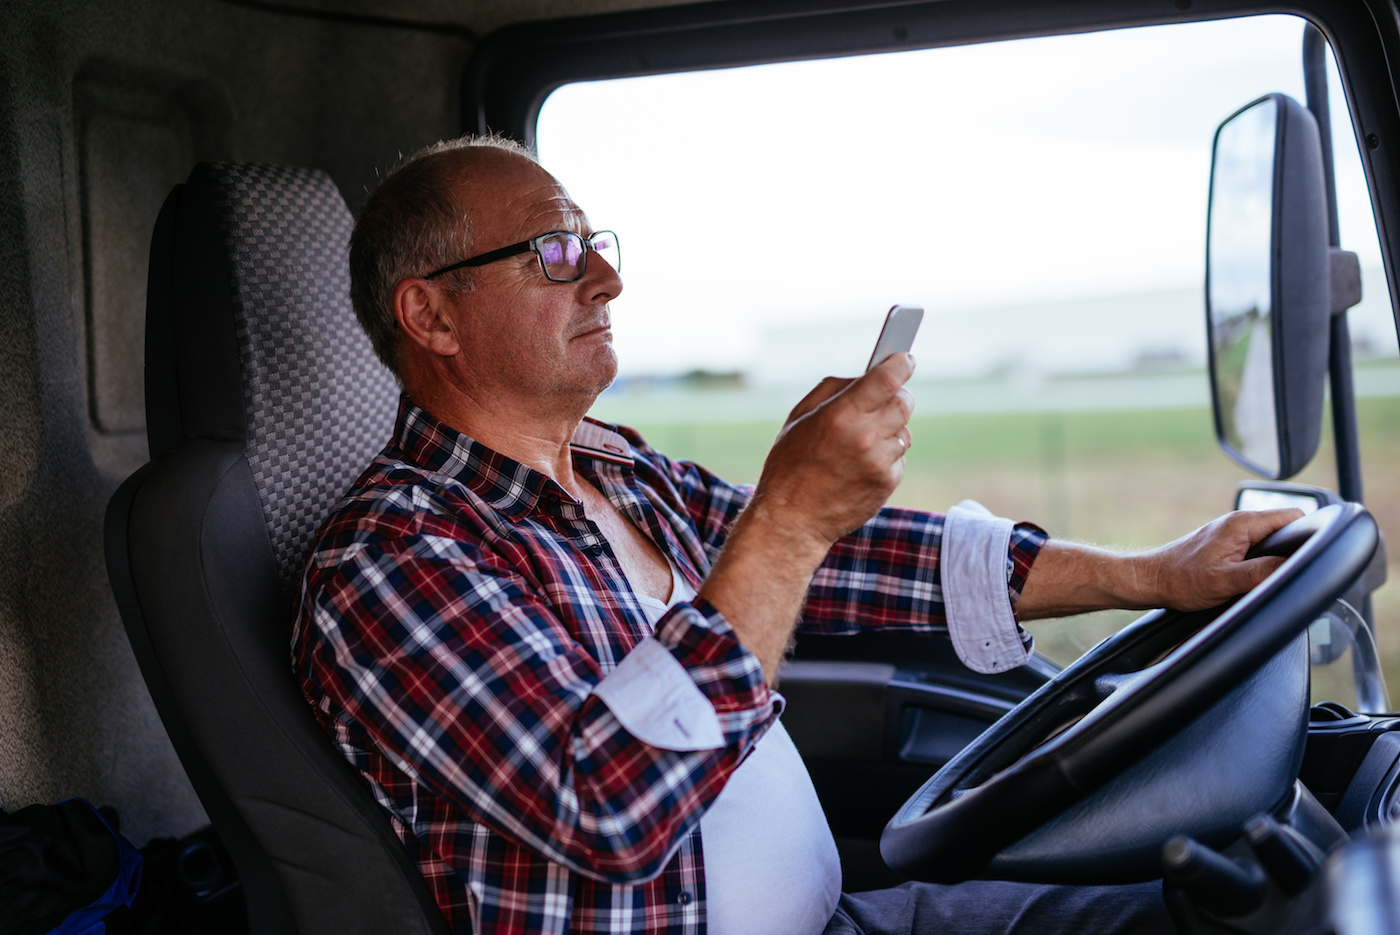 Truck driver on phone